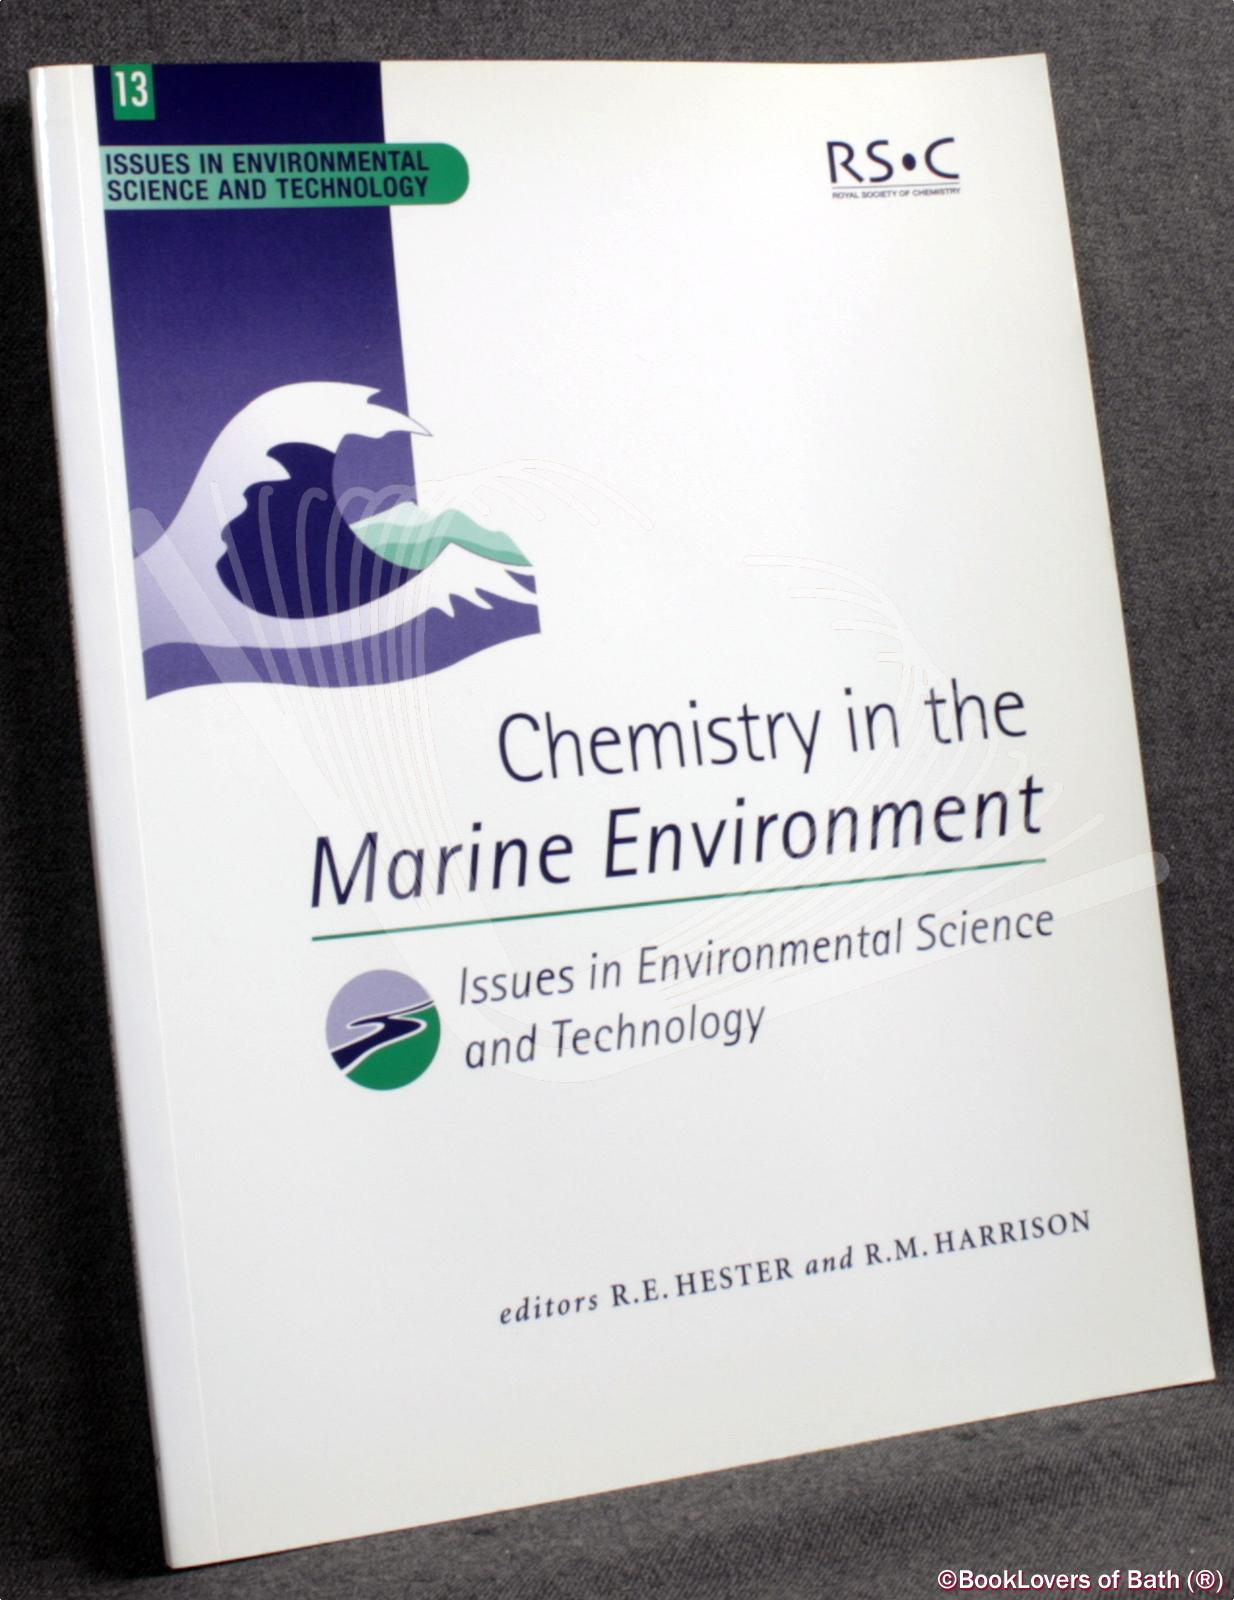 Chemistry in the Marine Environment - Edited by R. E. Hester & R. M. Harrison